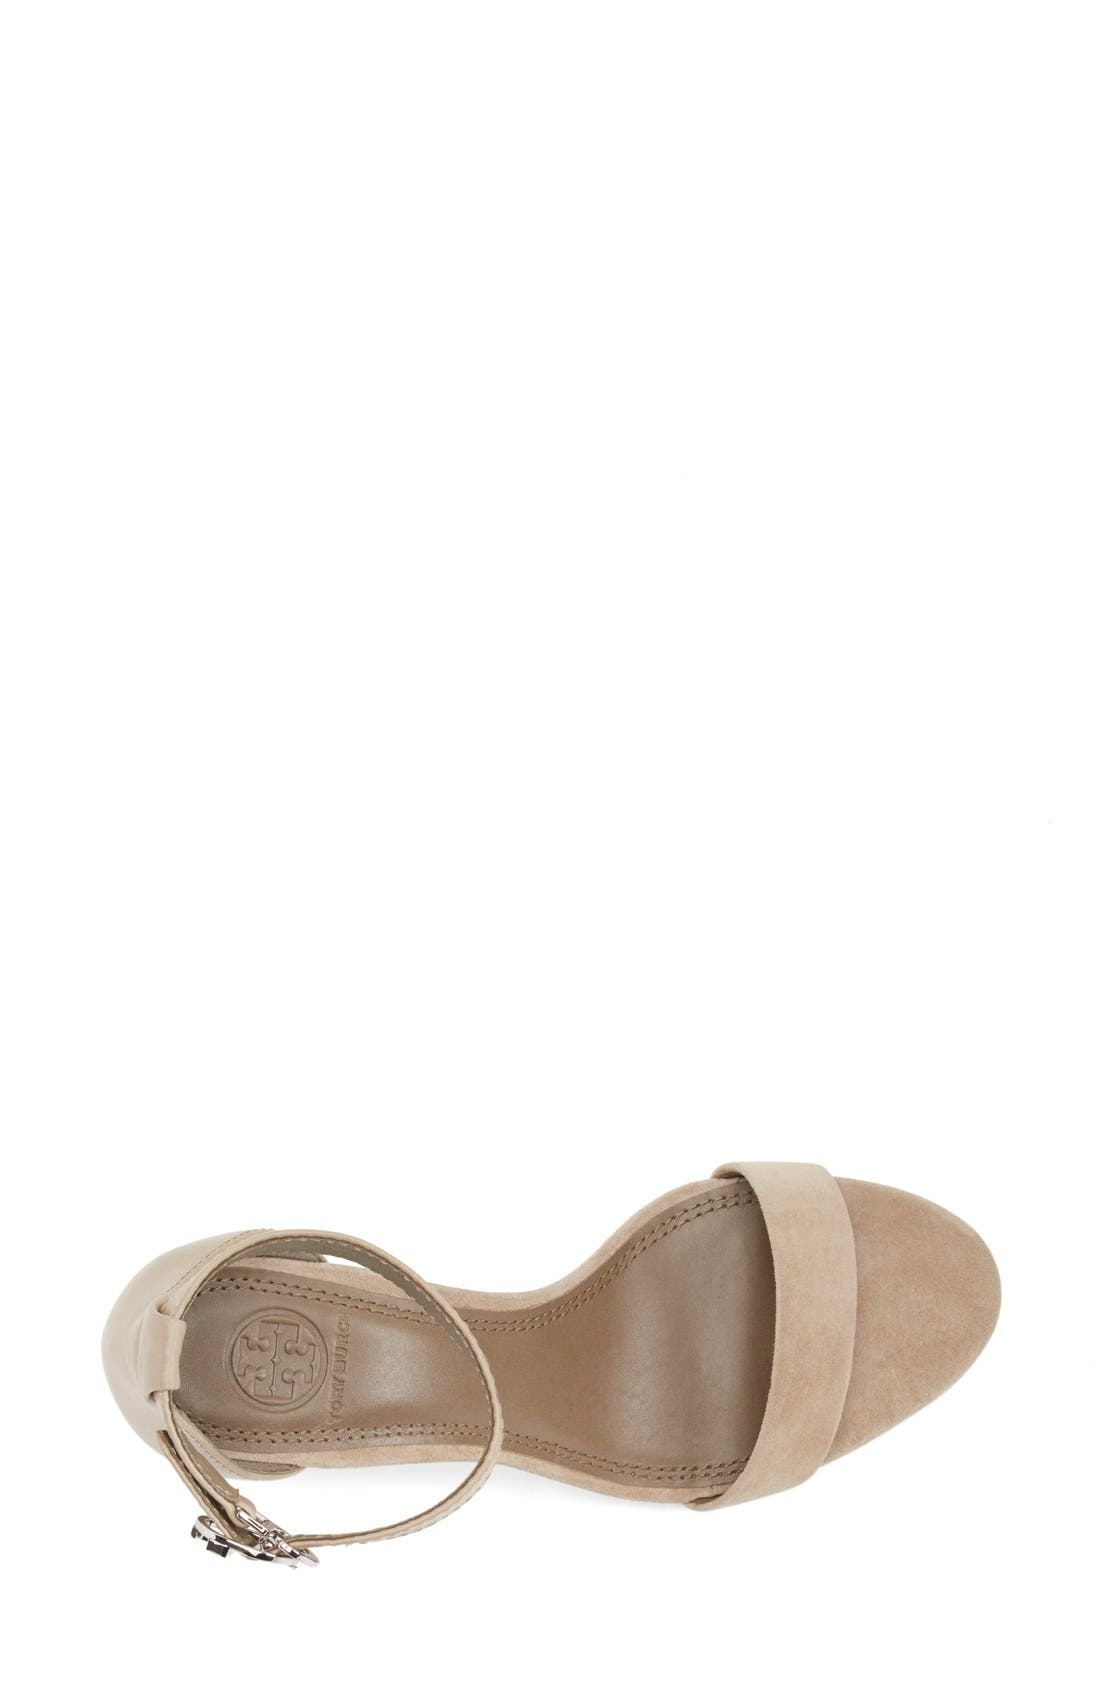 Alternate Image 3  - Tory Burch 'Thames' Ankle Strap Wedge Sandal (Women)